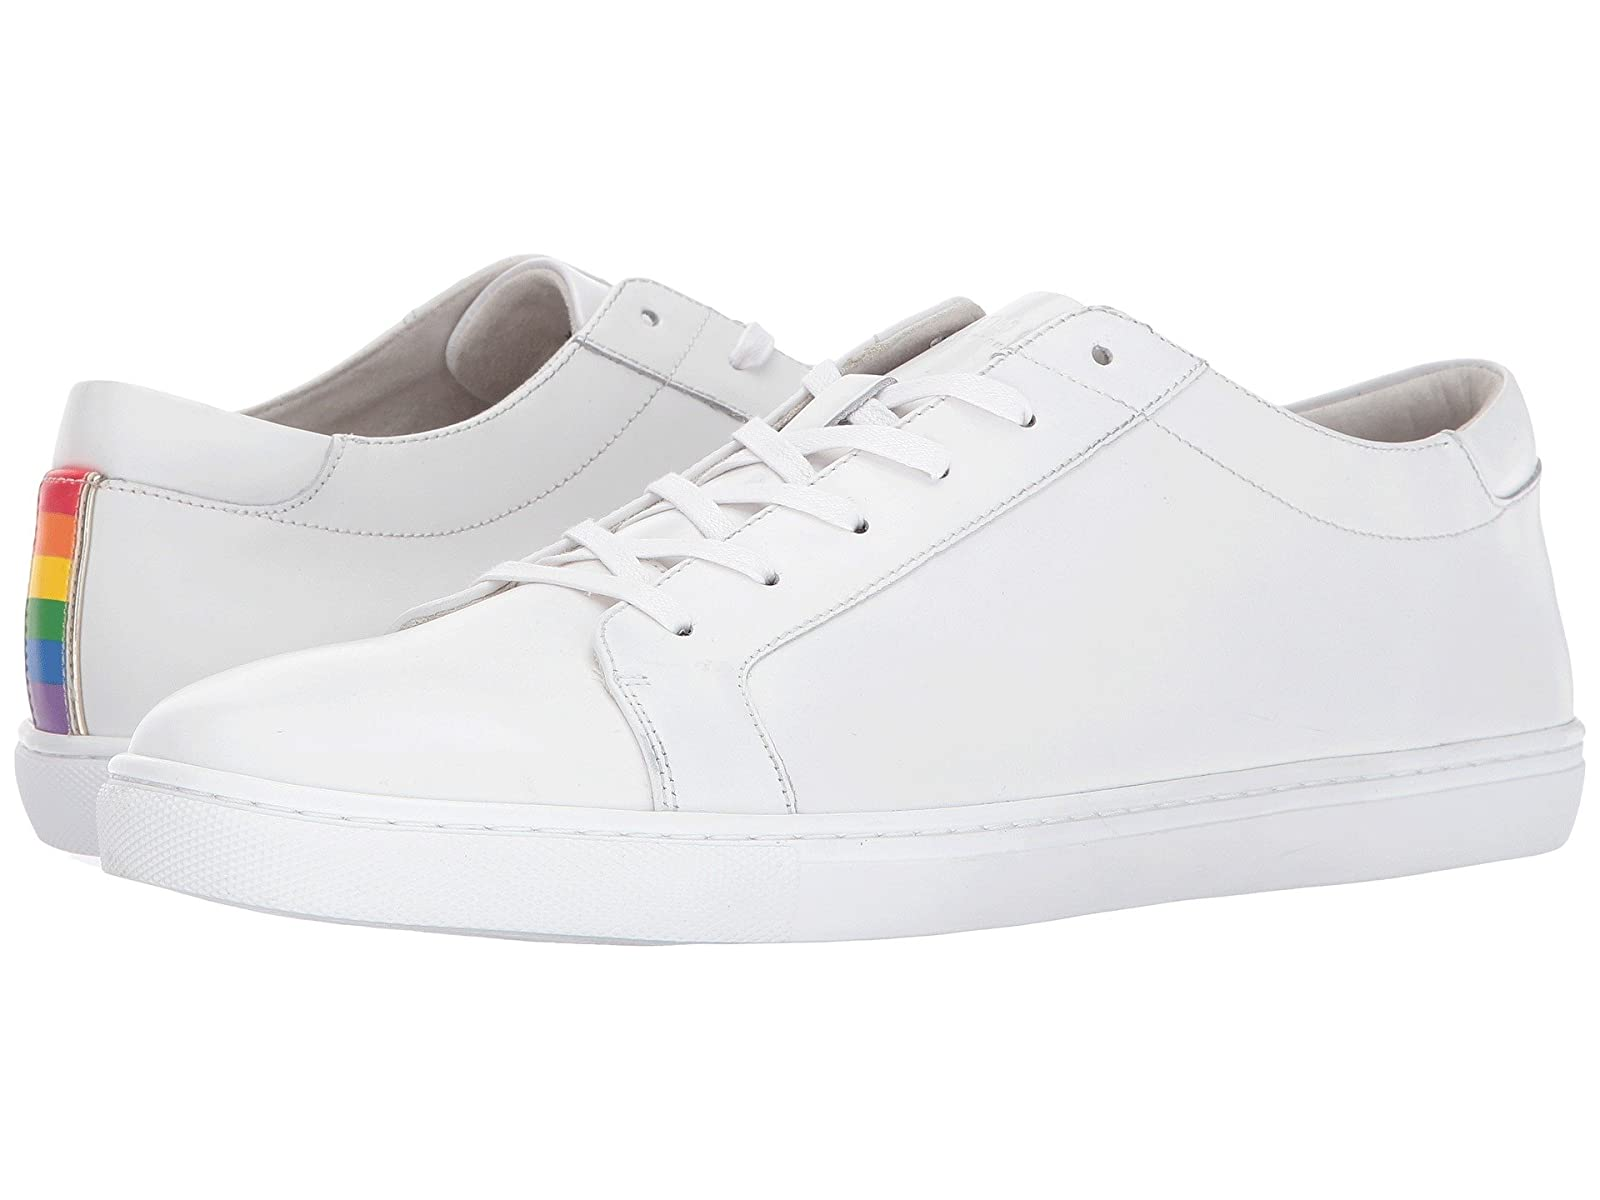 Kenneth Cole New York Kam PrideAtmospheric grades have affordable shoes